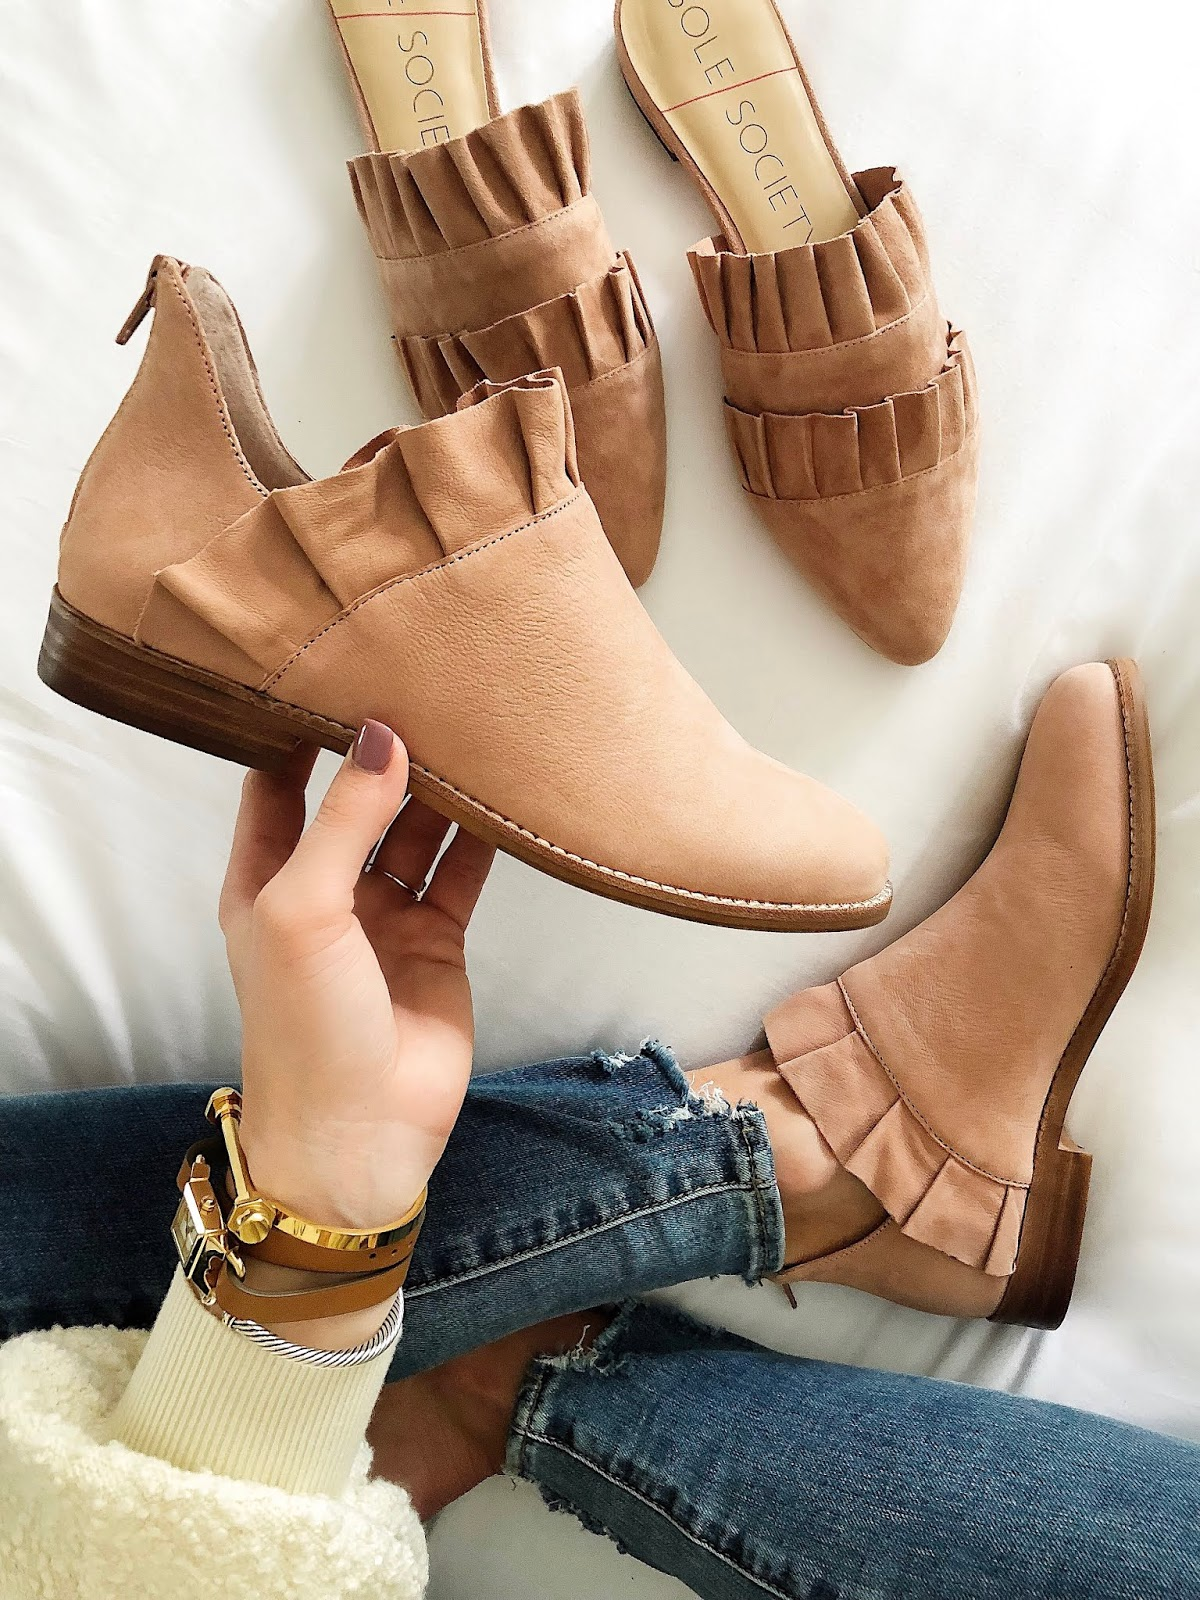 Ruffle Booties and Mules - Something Delightful Blog